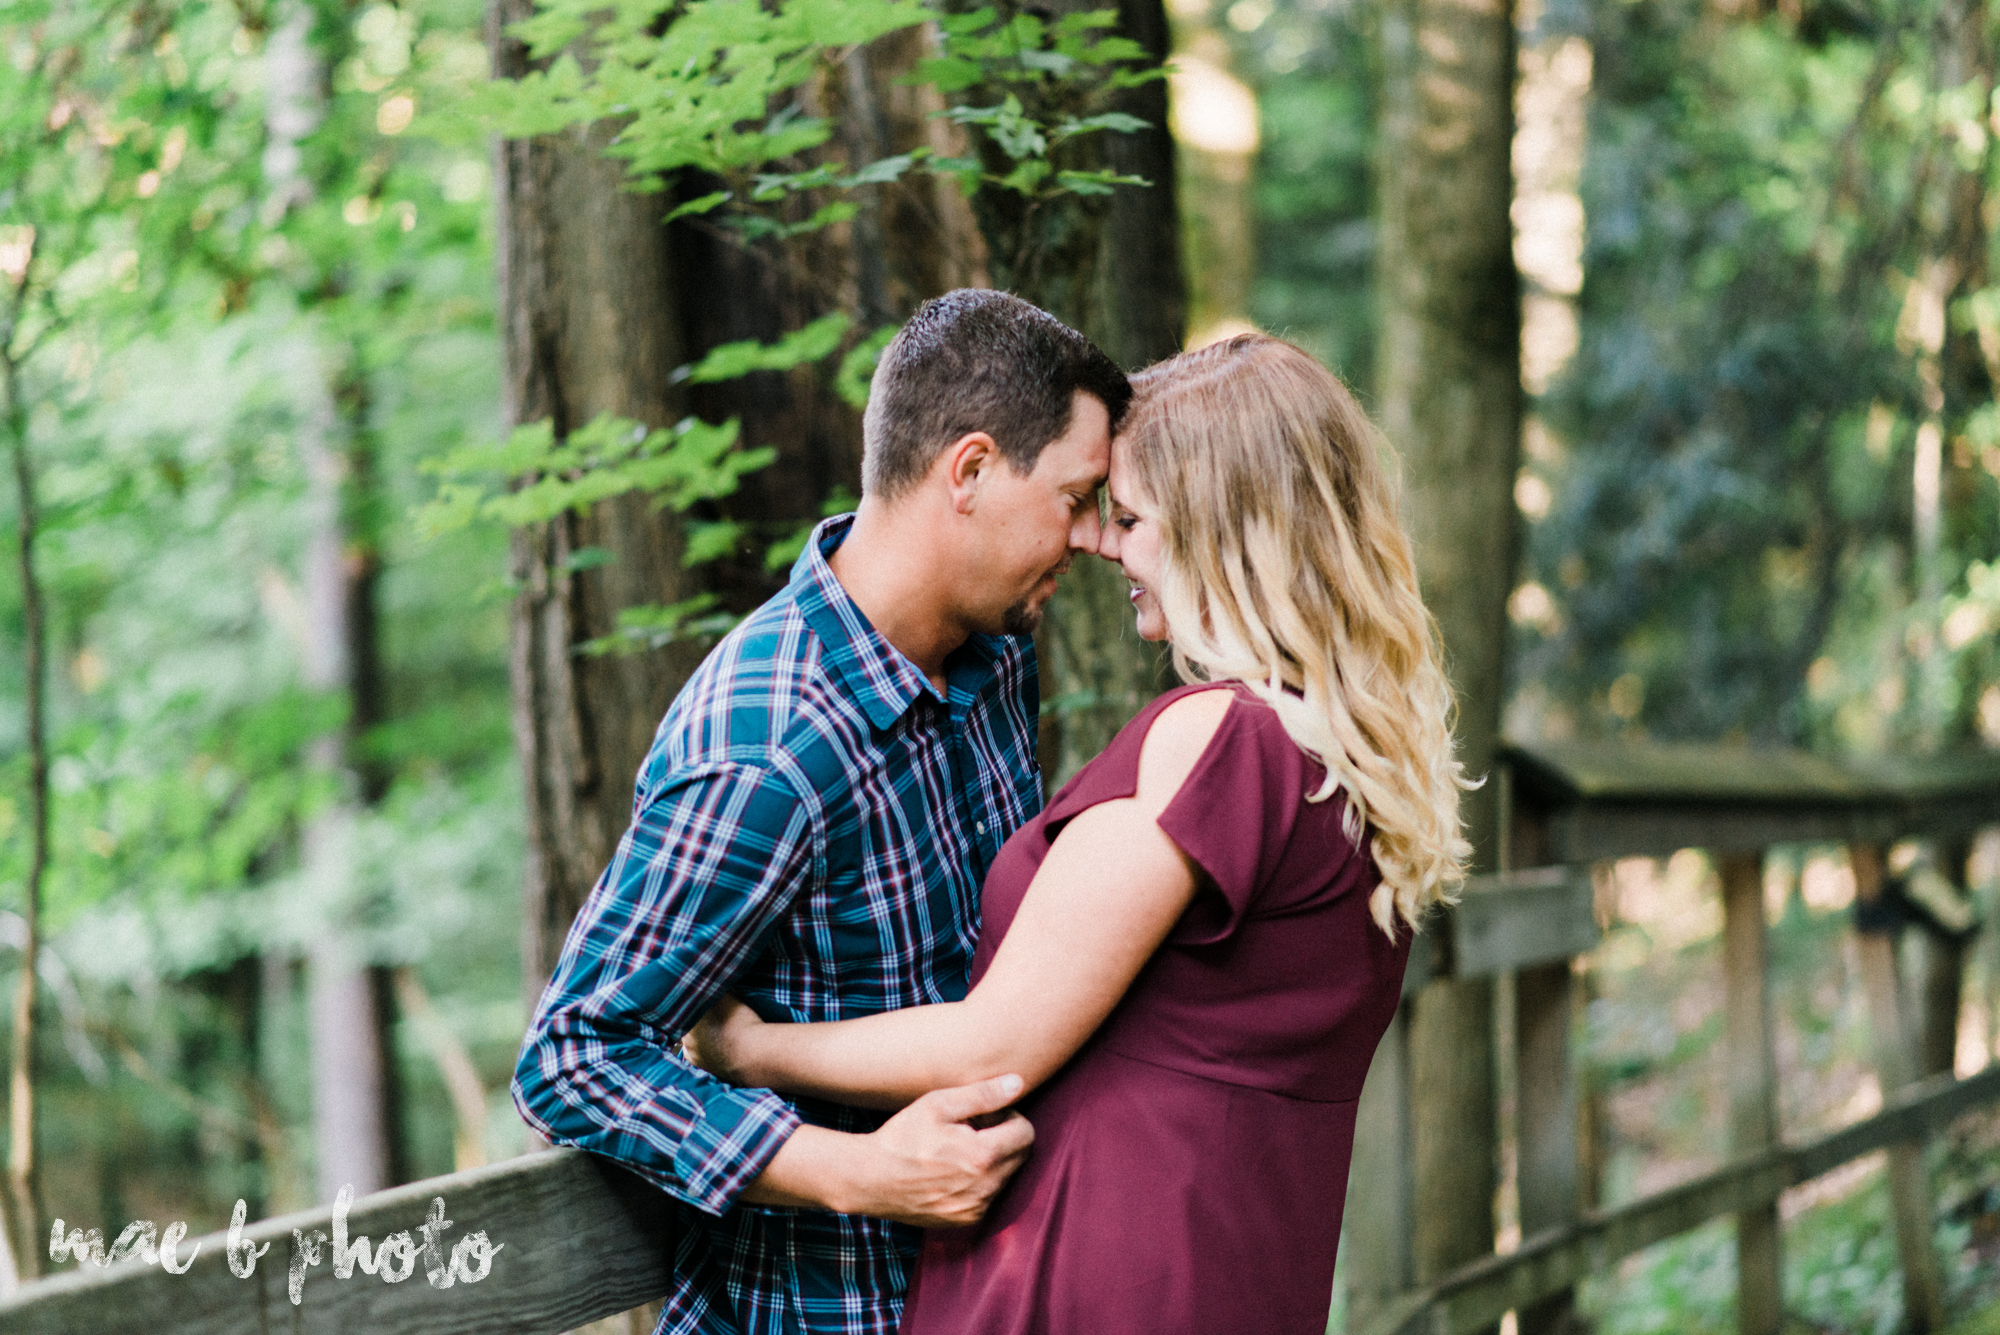 becca and rich's woodsy summer engagement session at ford nature center in mill creek park in youngstown ohio photographed by cleveland wedding photographer mae b photo-3.jpg